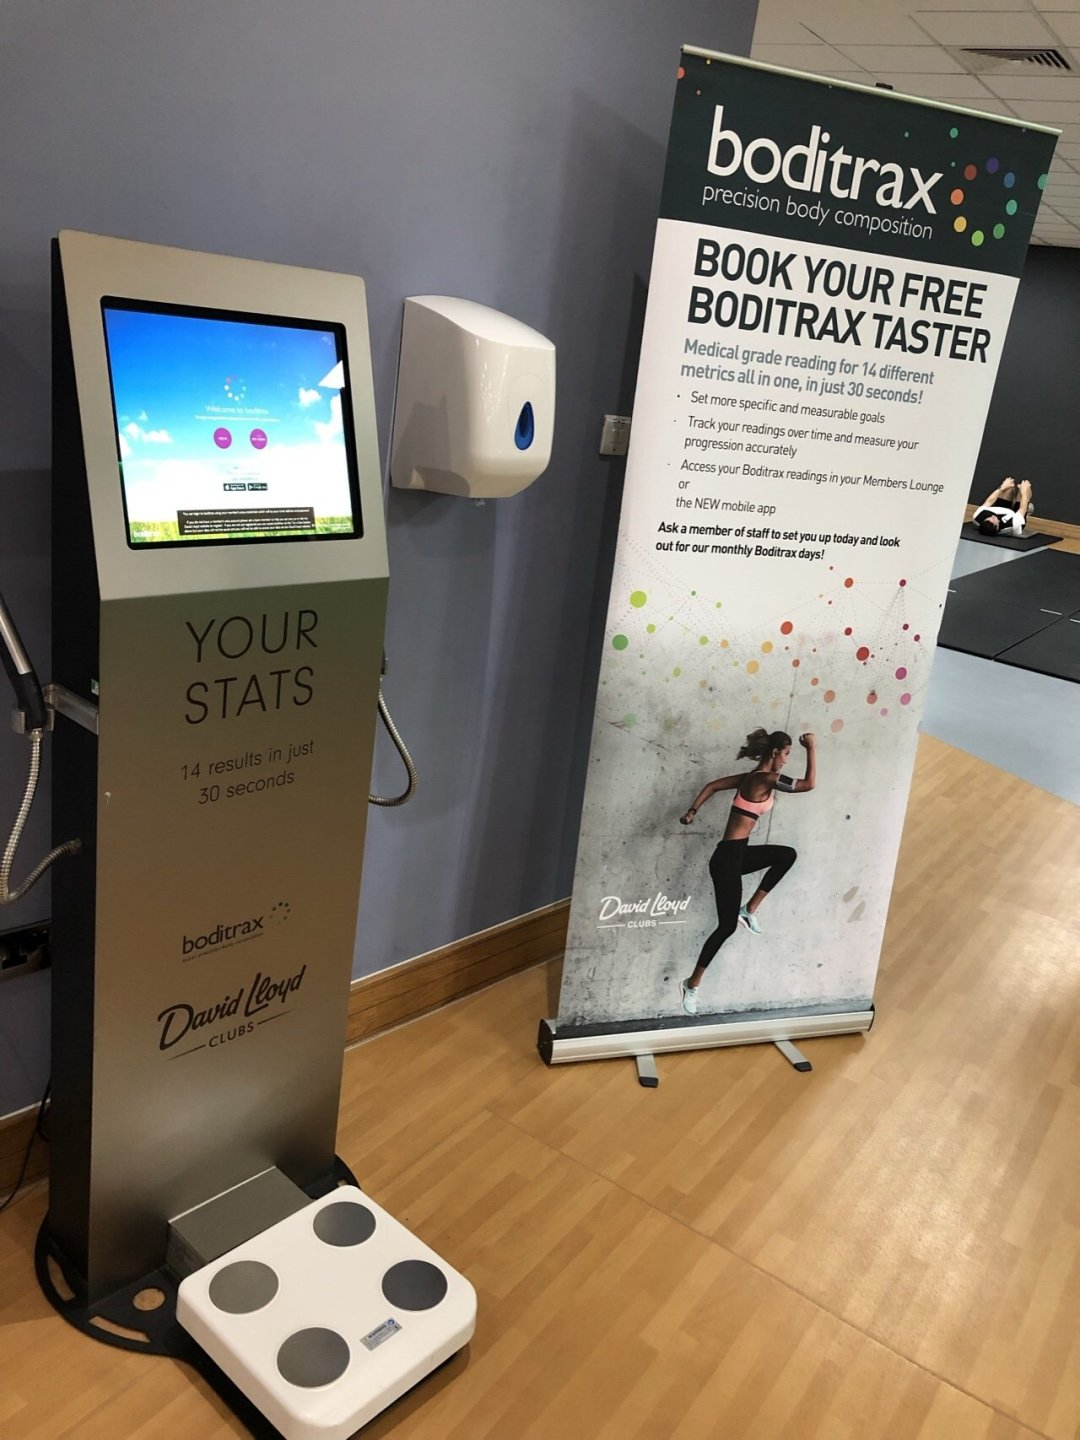 Boditrax body measuring scales at David Lloyd Gym